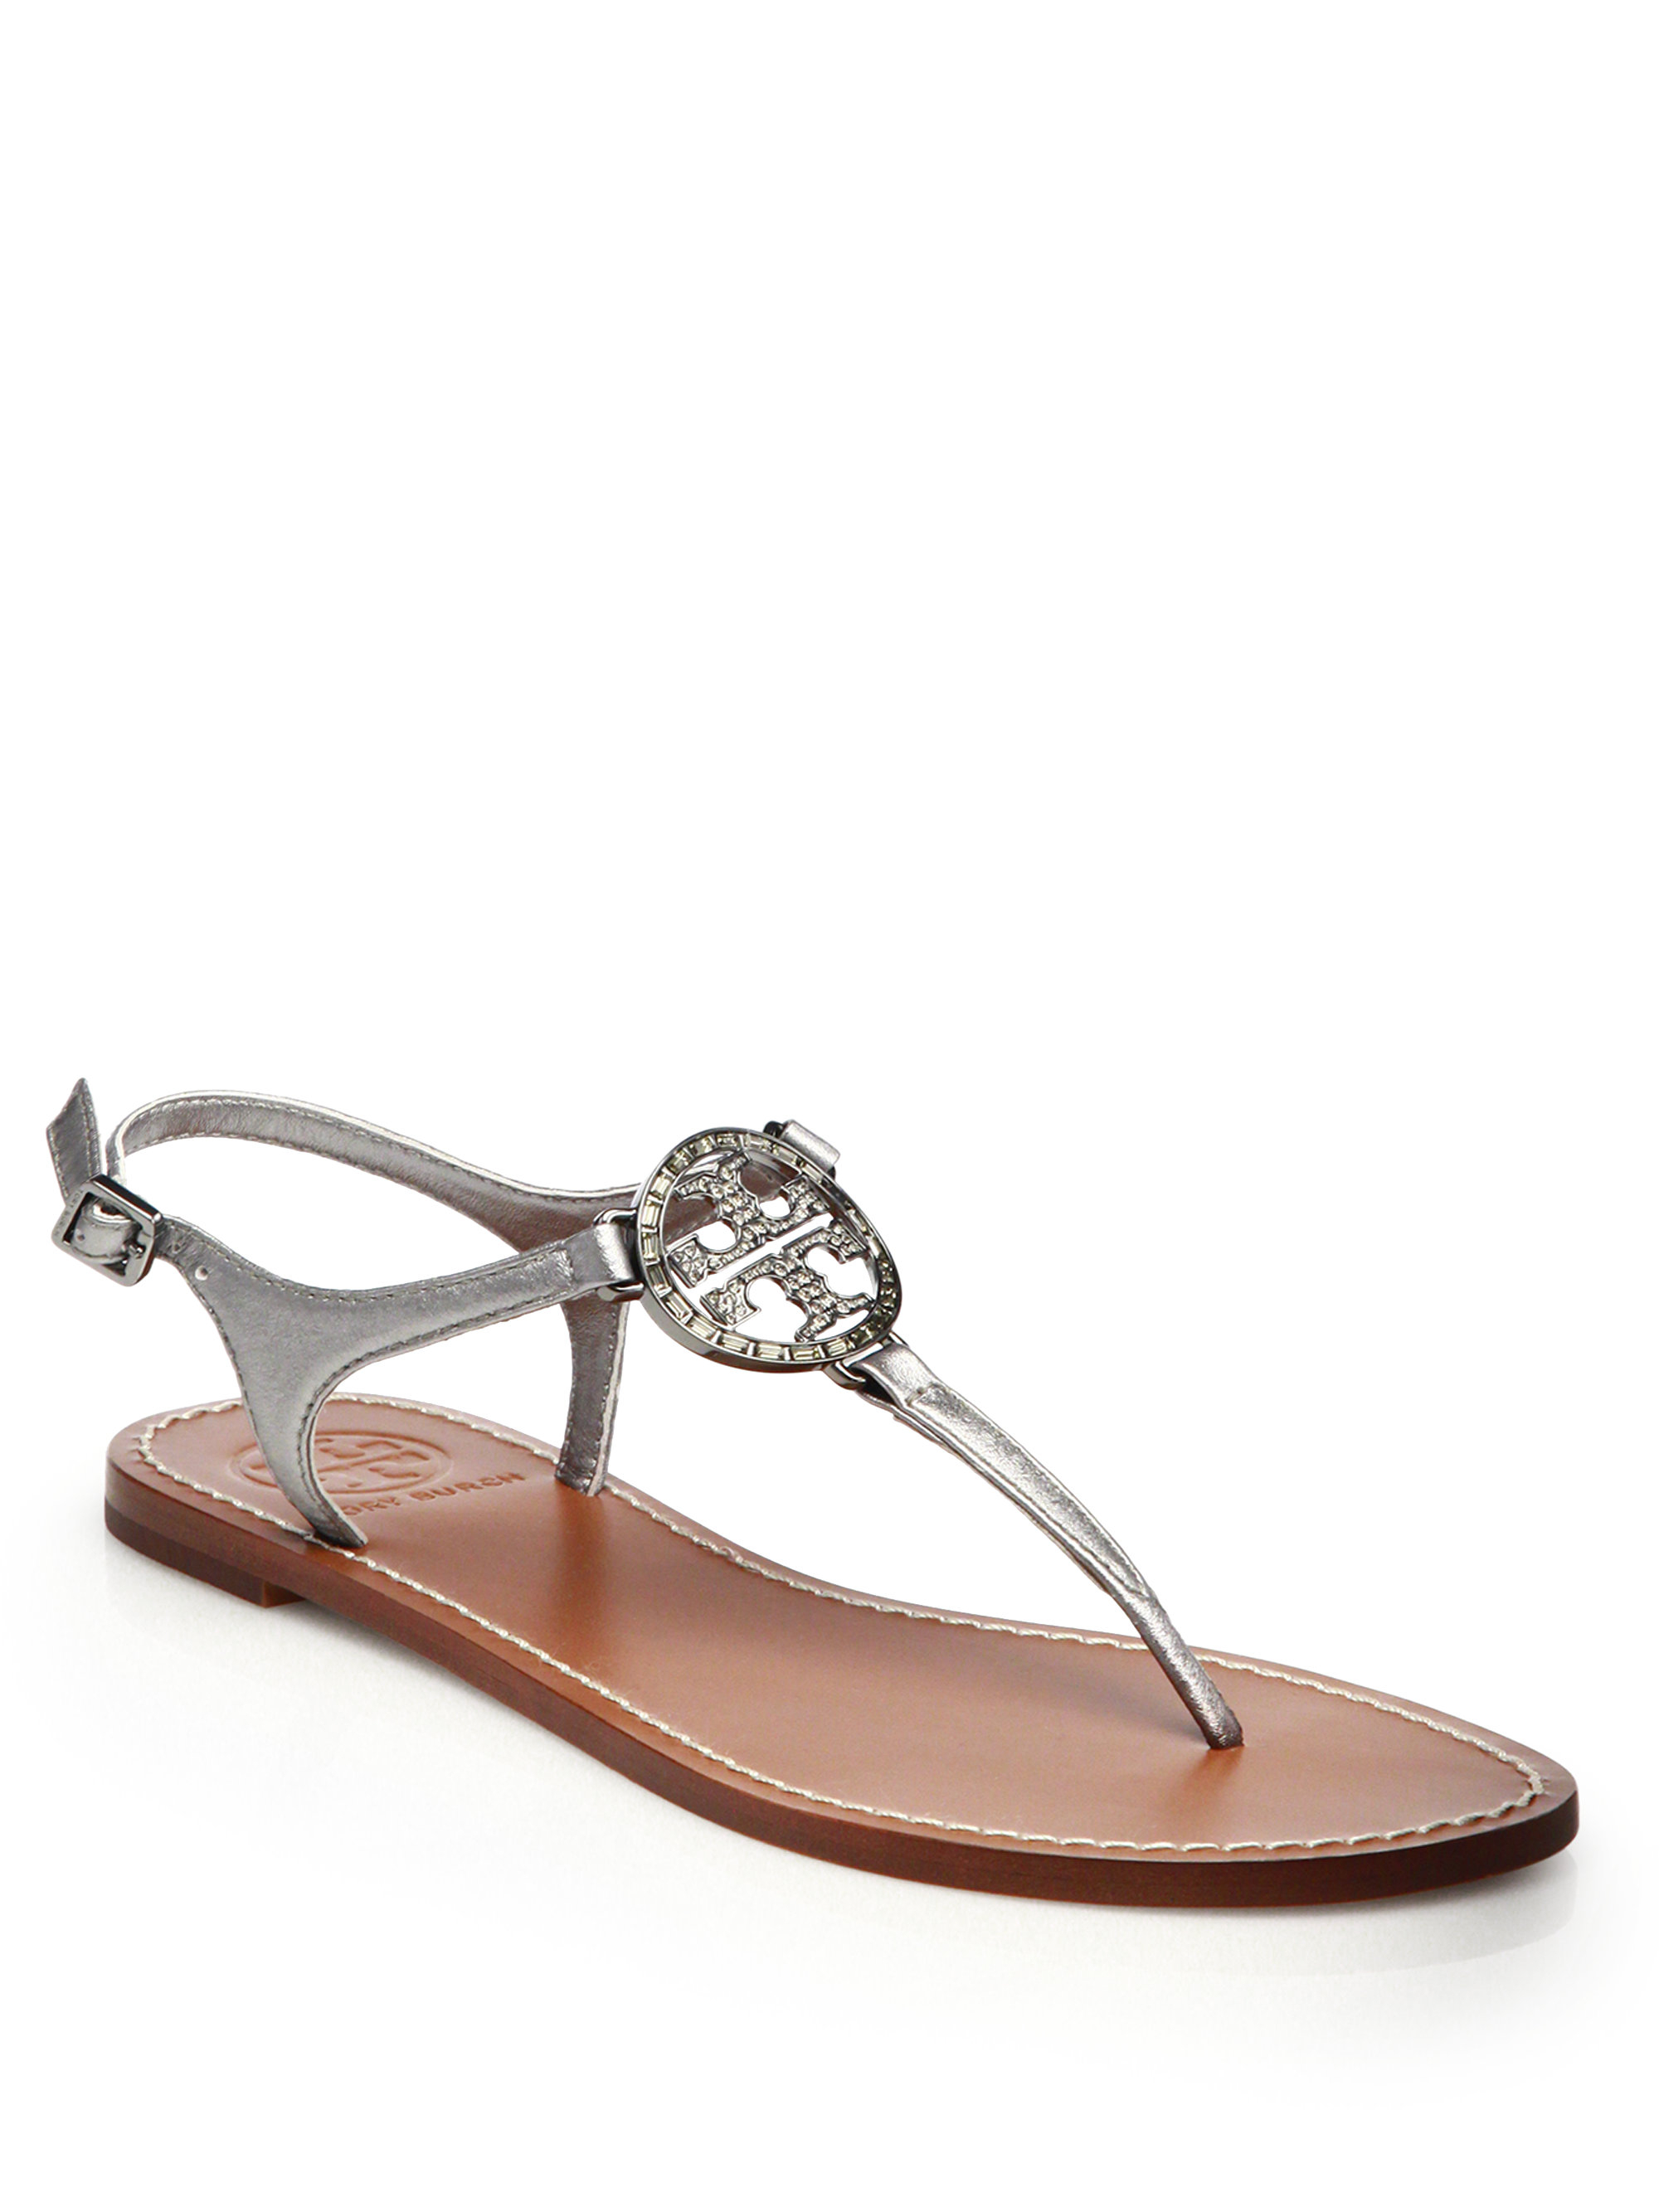 Lyst Tory Burch Violet Metallic Leather Thong Sandals In